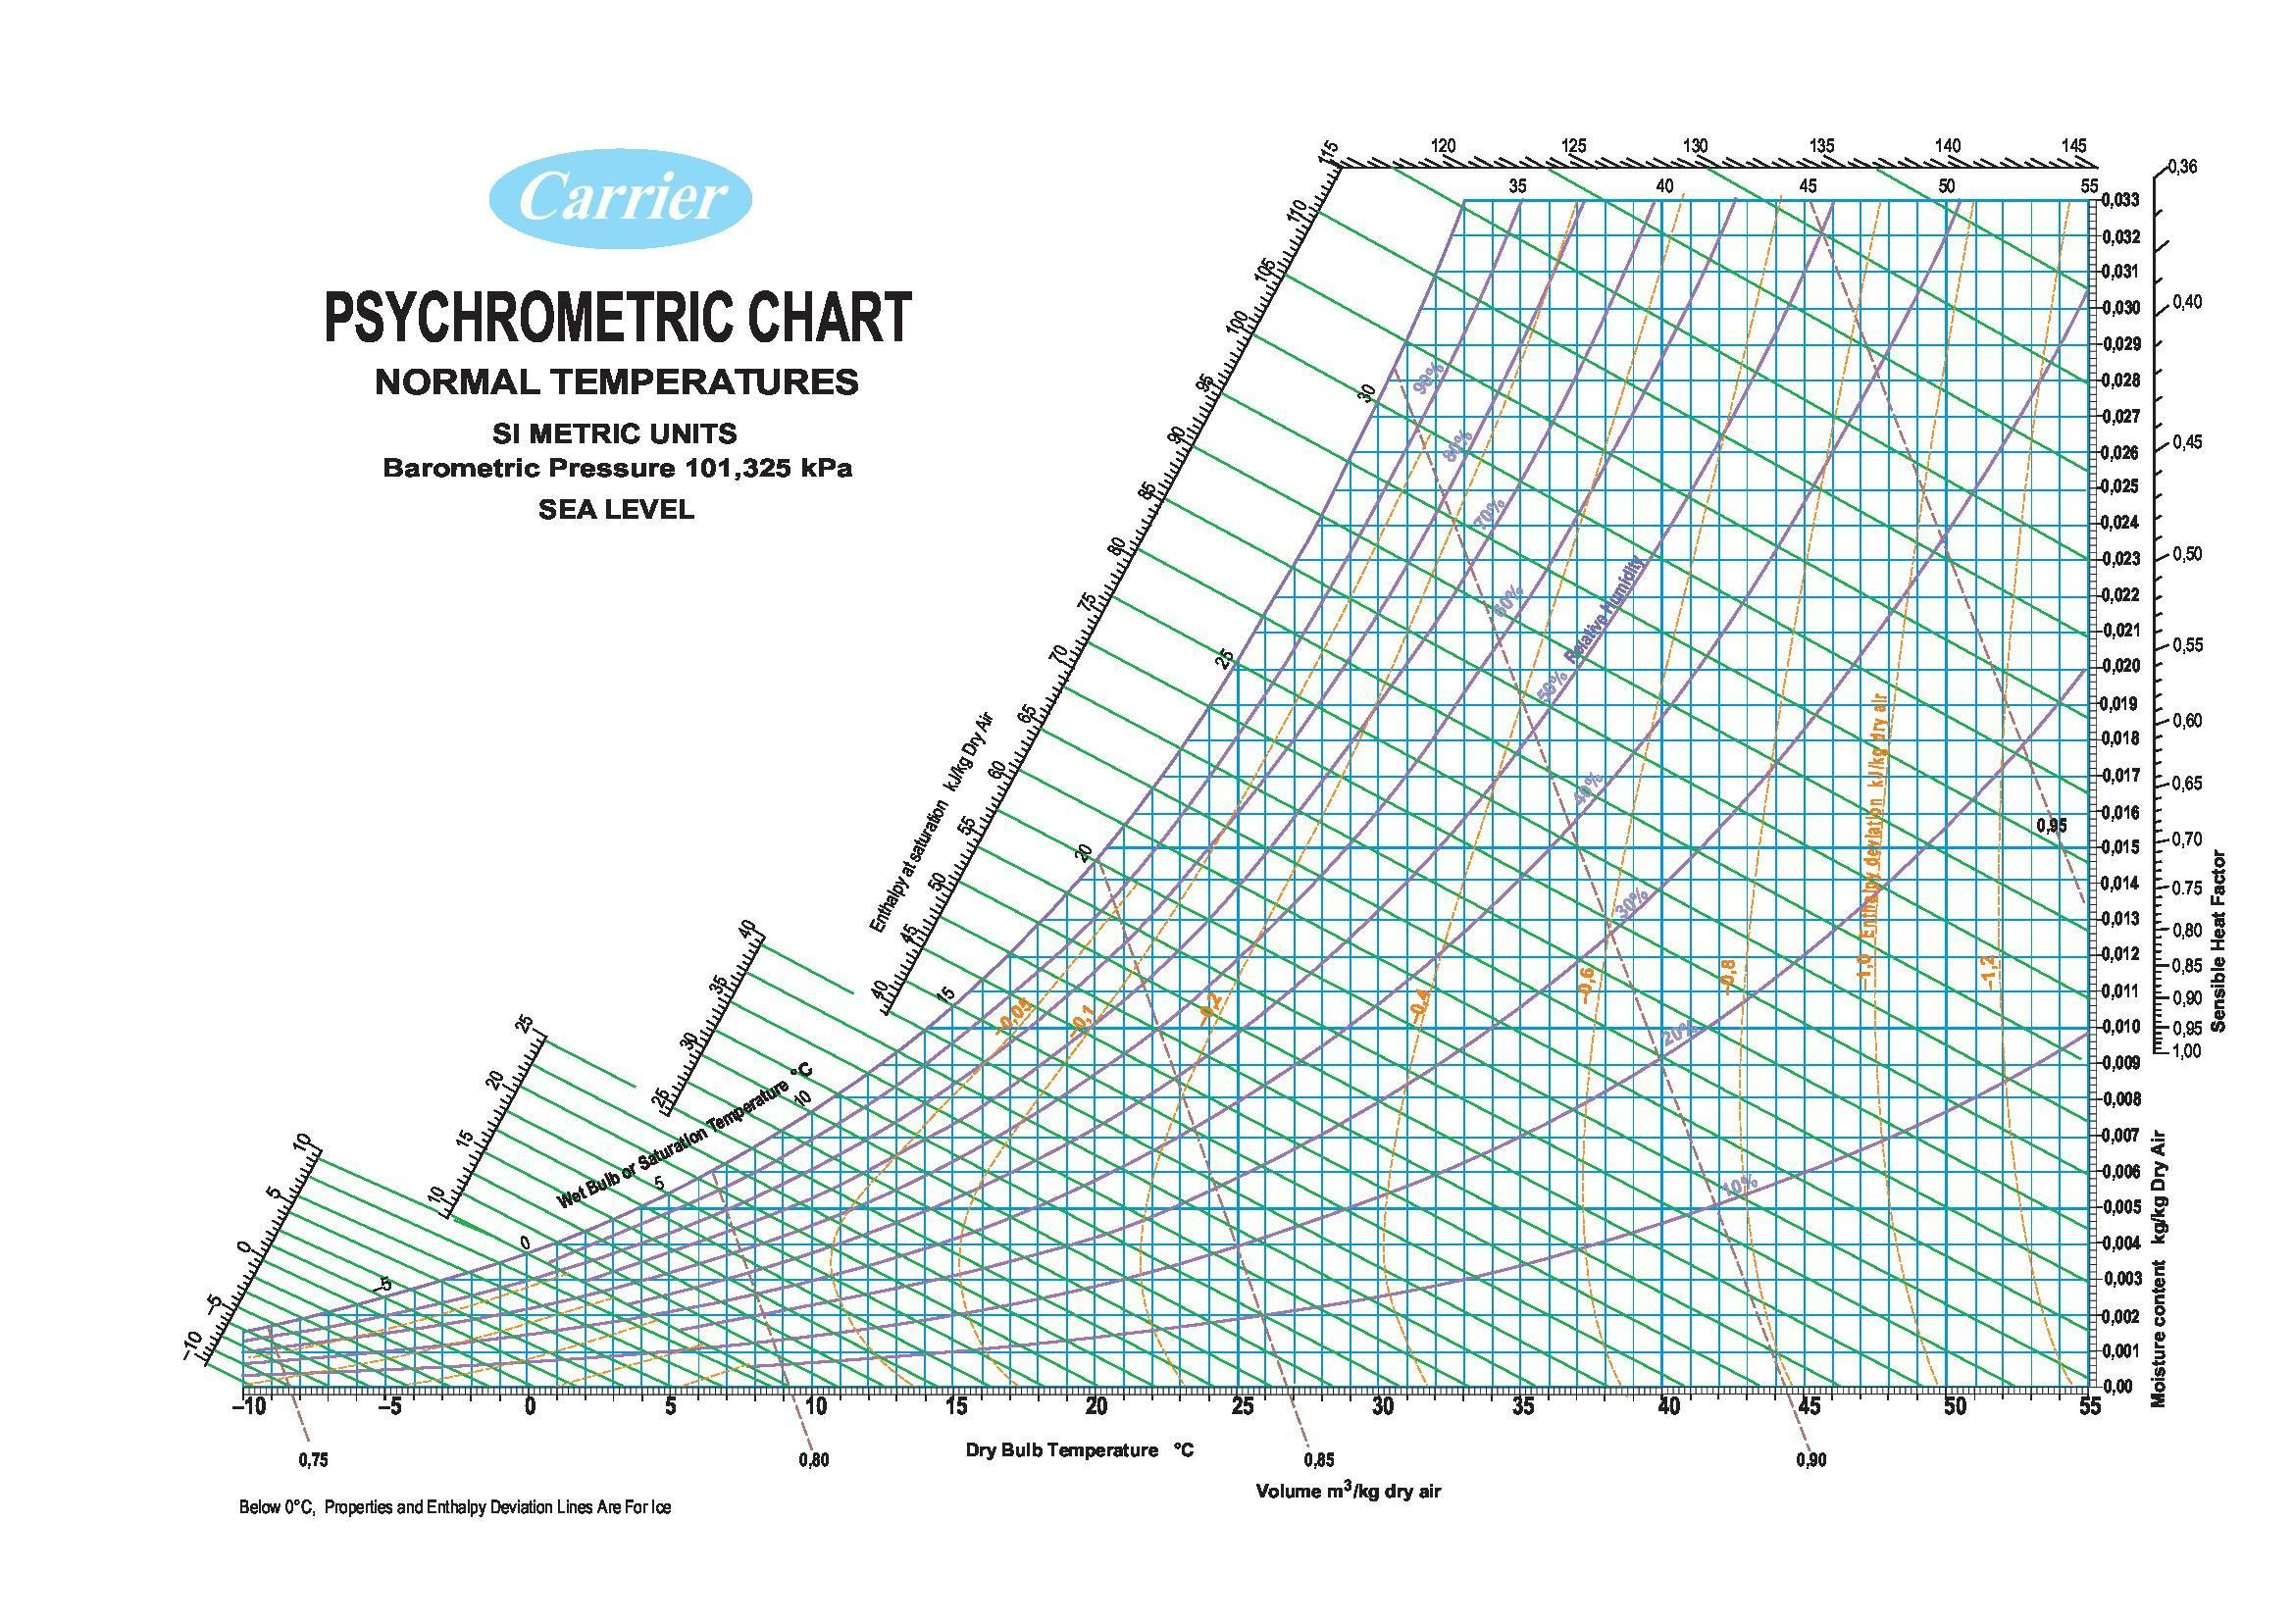 Psychrometric Chart Barometric Pressure 29.921 inches of Mercury